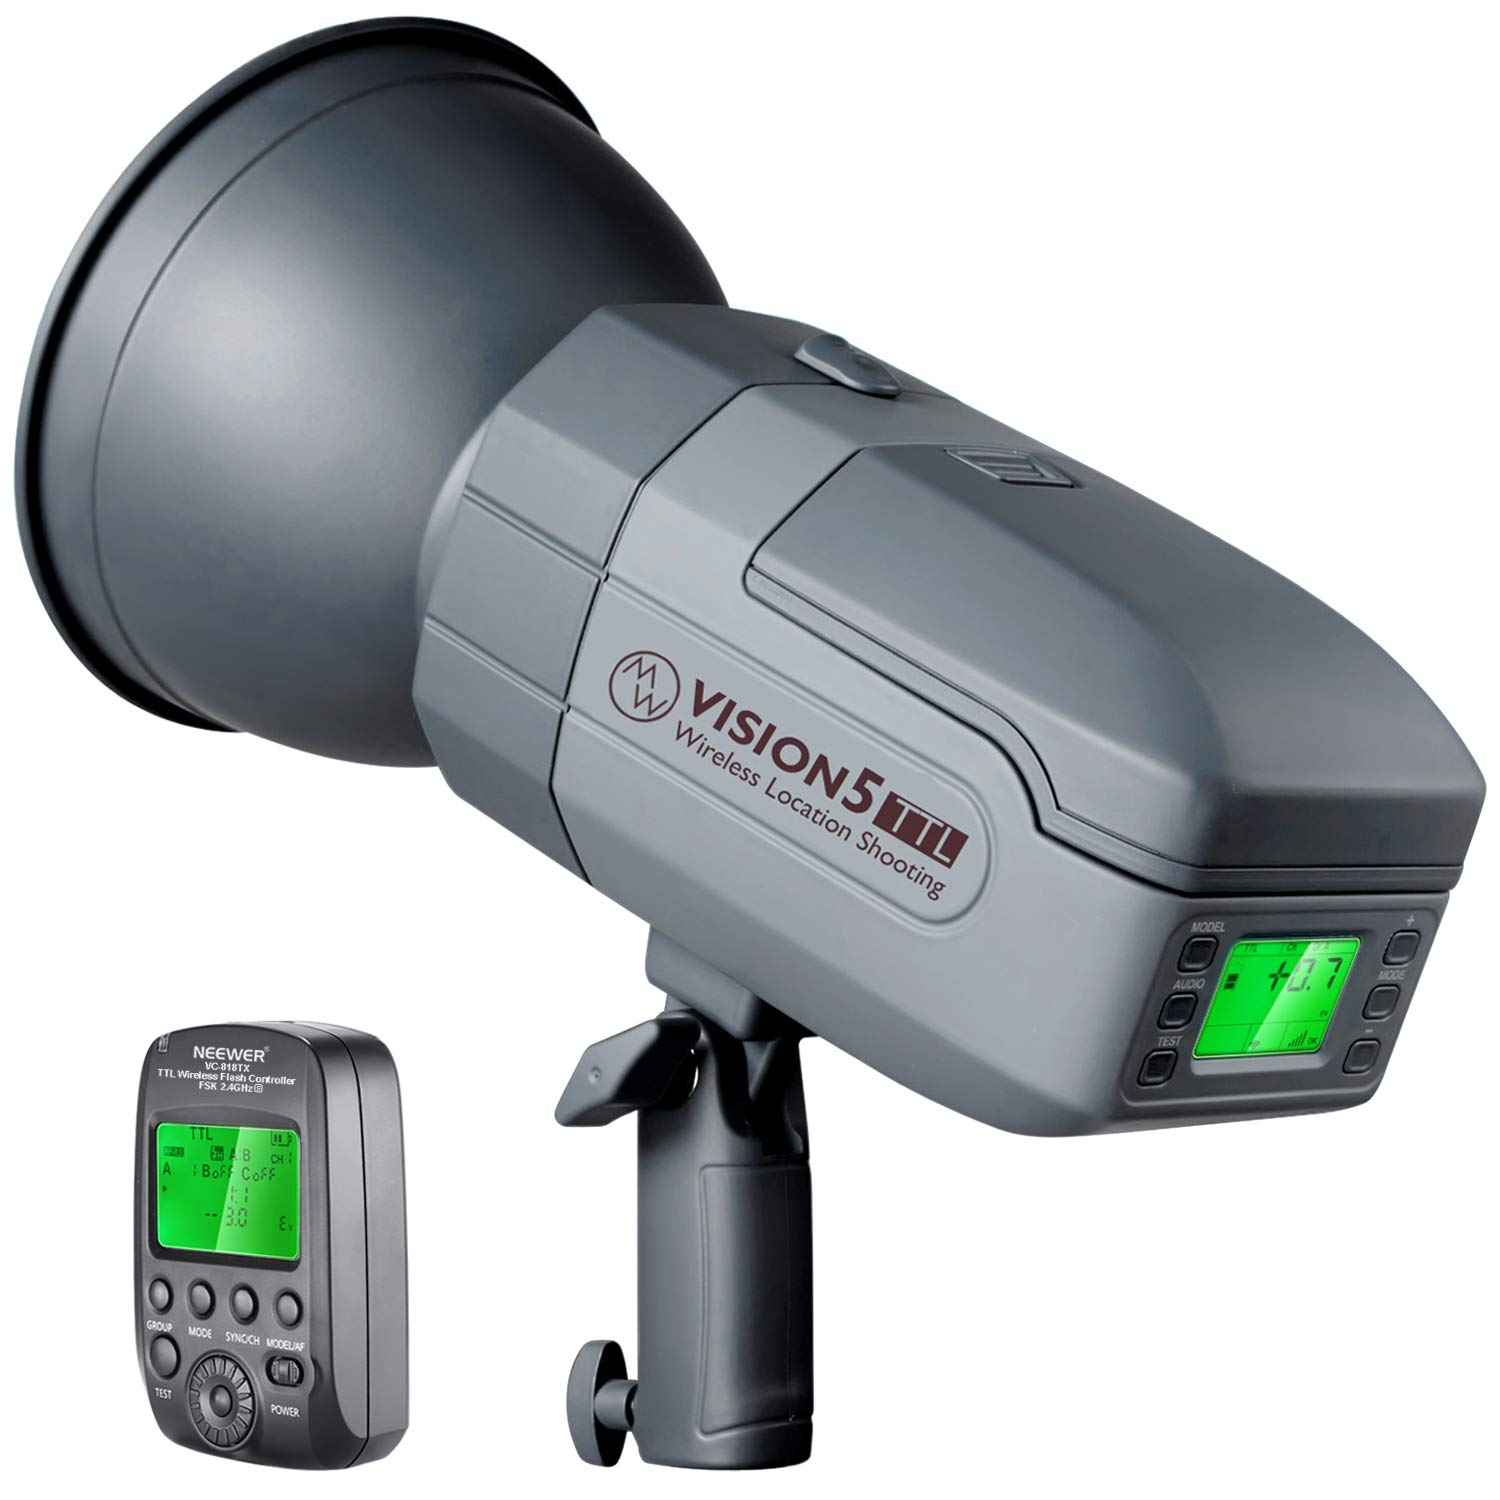 Neewer Vision5 400W TTL for Sony HSS Outdoor Studio Flash Strobe with 2.4G System and Wireless Trigger, Lithium Battery (up to 500 Full Power Flashes), German Engineered, 3.96 Pounds, Bowens Mount